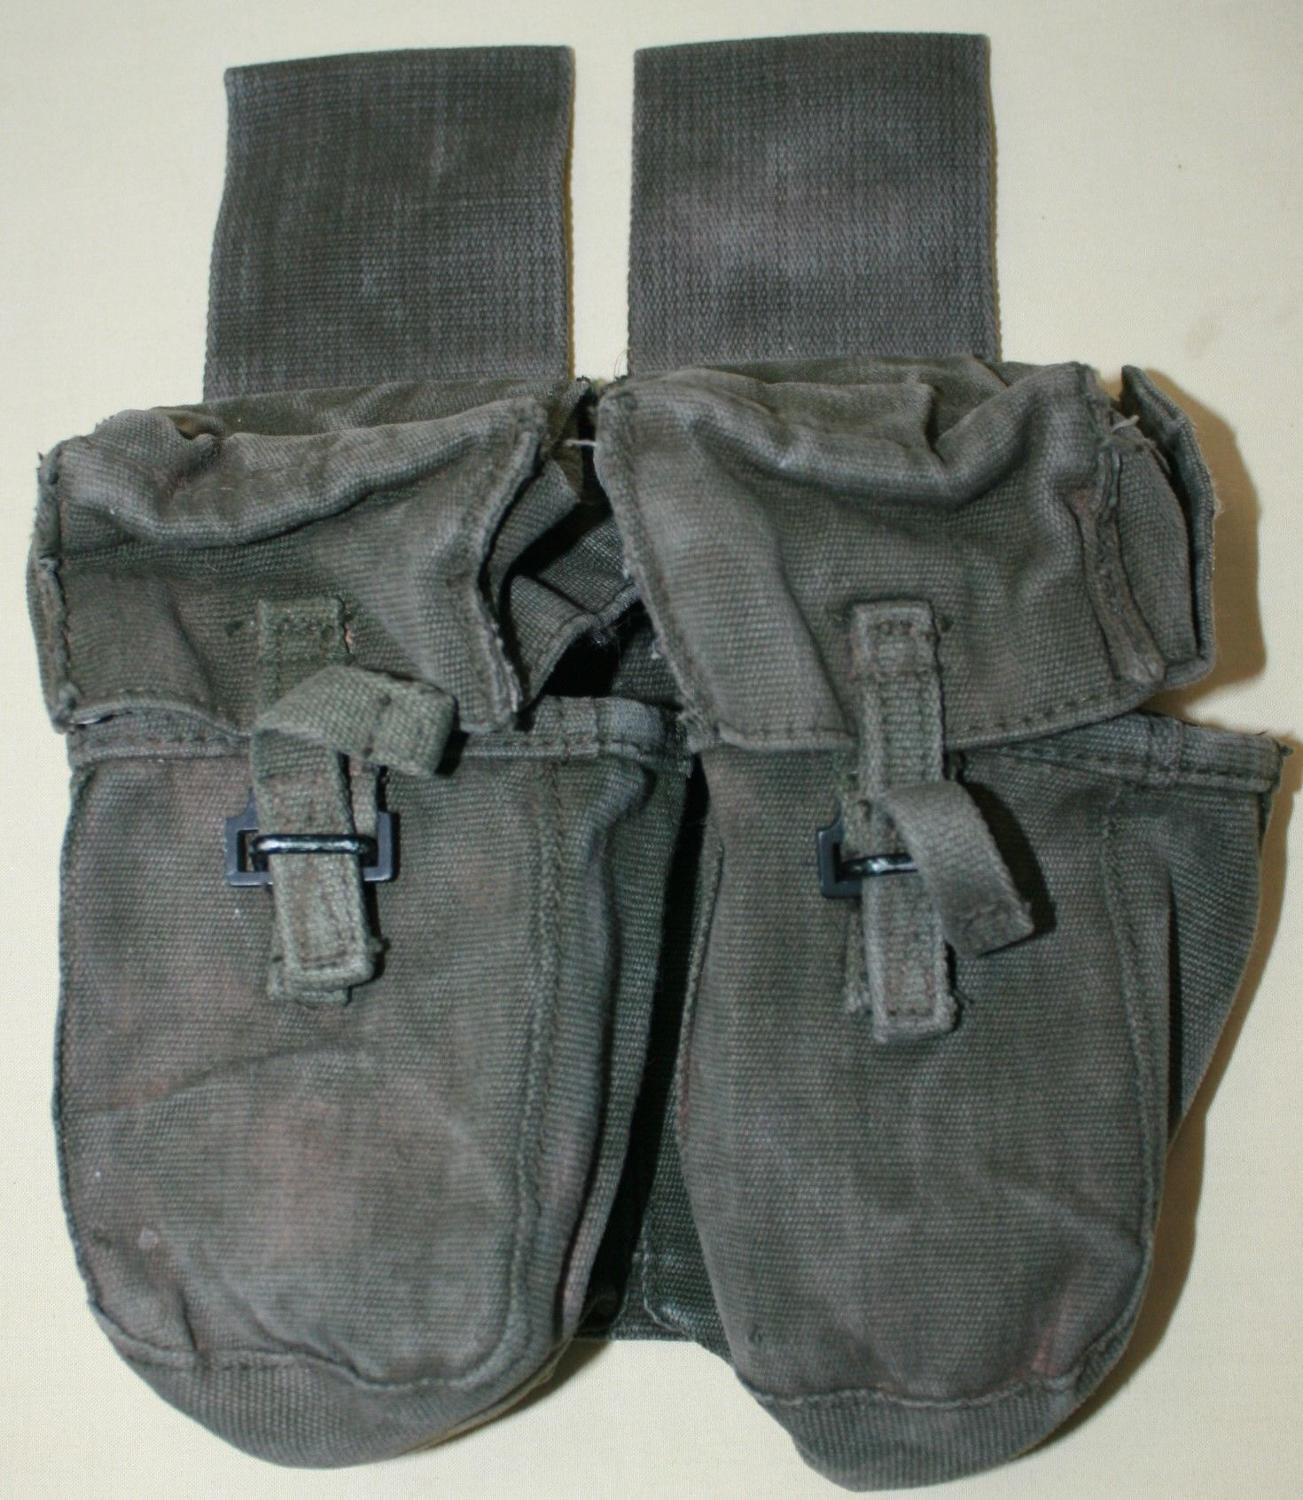 A SAS 1970'S -80'S DOUBLE DROP MAGAZINE POUCH